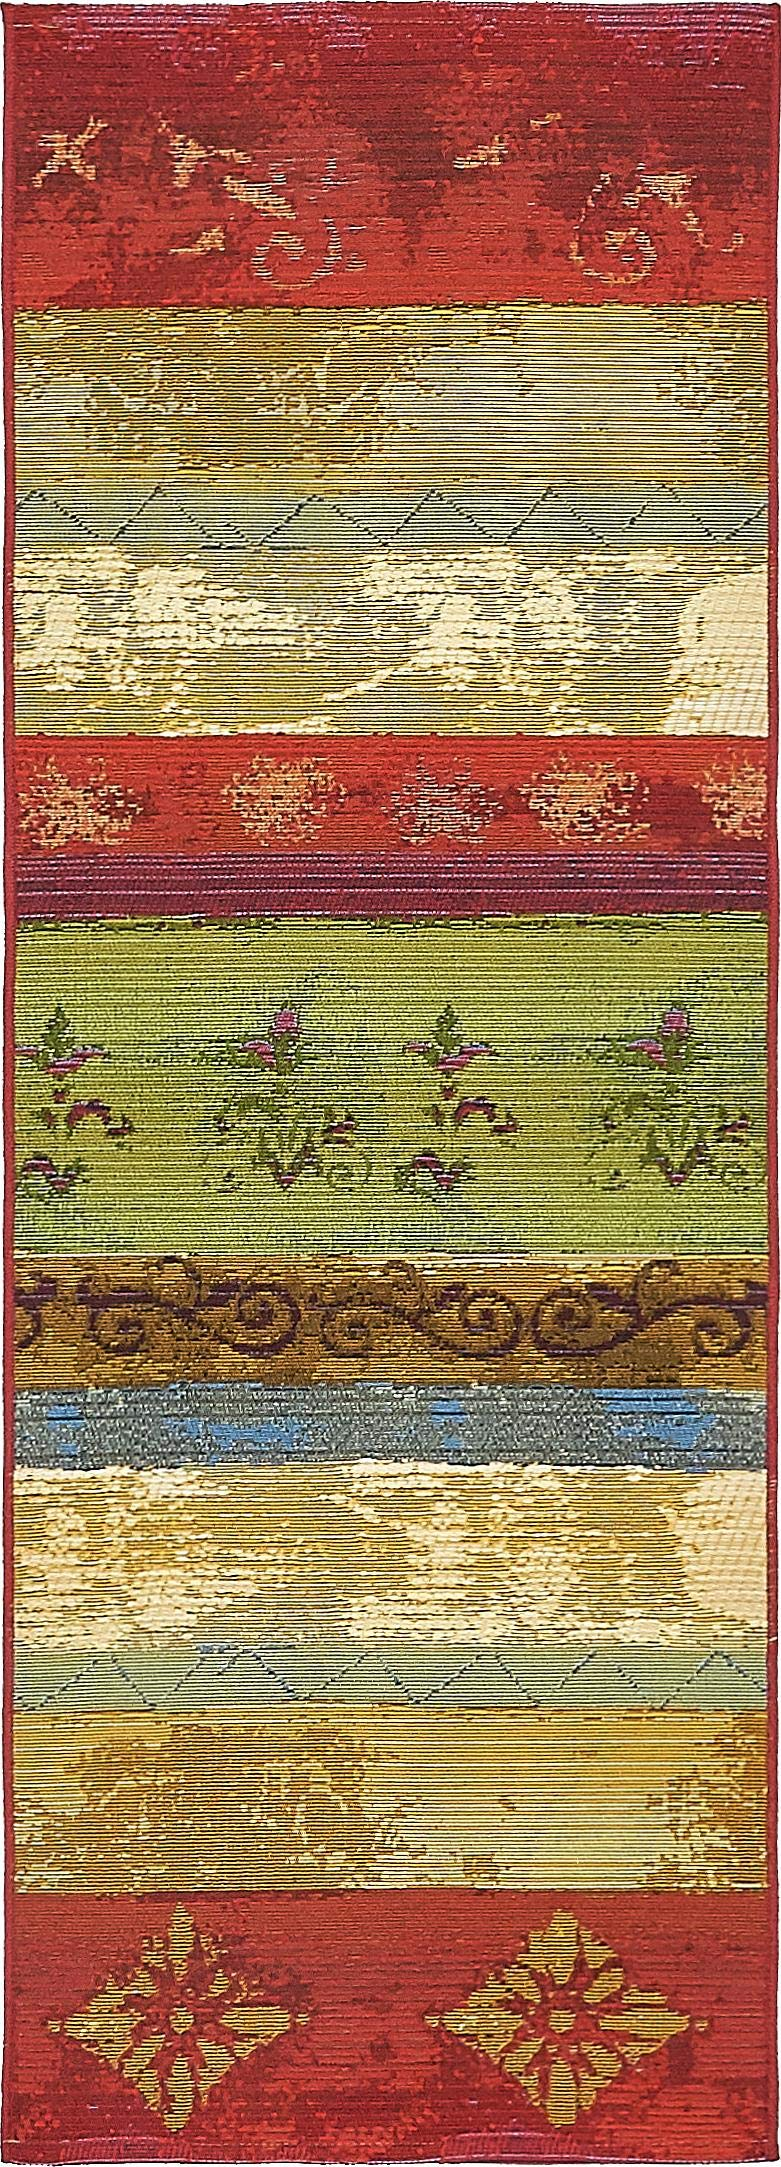 Unique Loom Outdoor Collection Colorful Striped Botanical Transitional Indoor and Outdoor Multi Runner Rug (2' x 6')